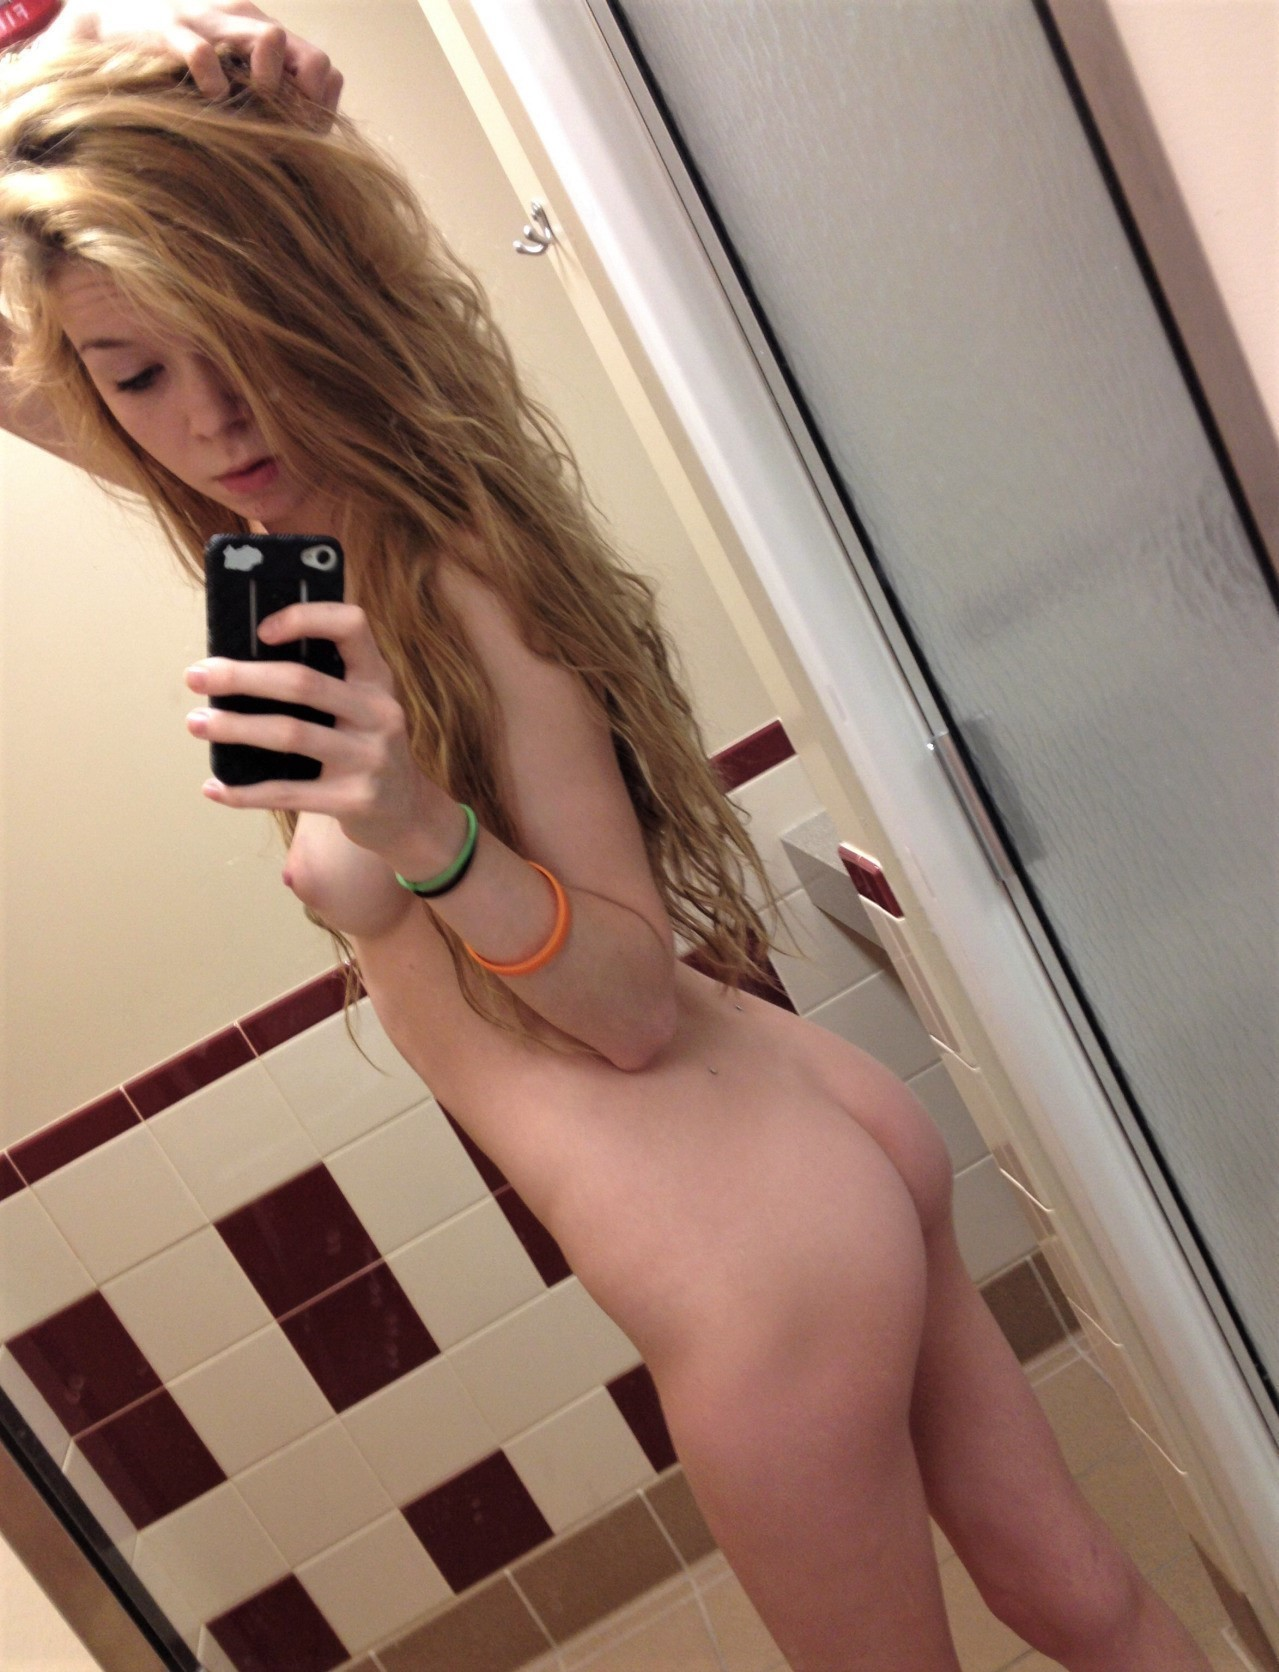 selfie-naked-girls-selfshot-amateur-mix-vol5-24